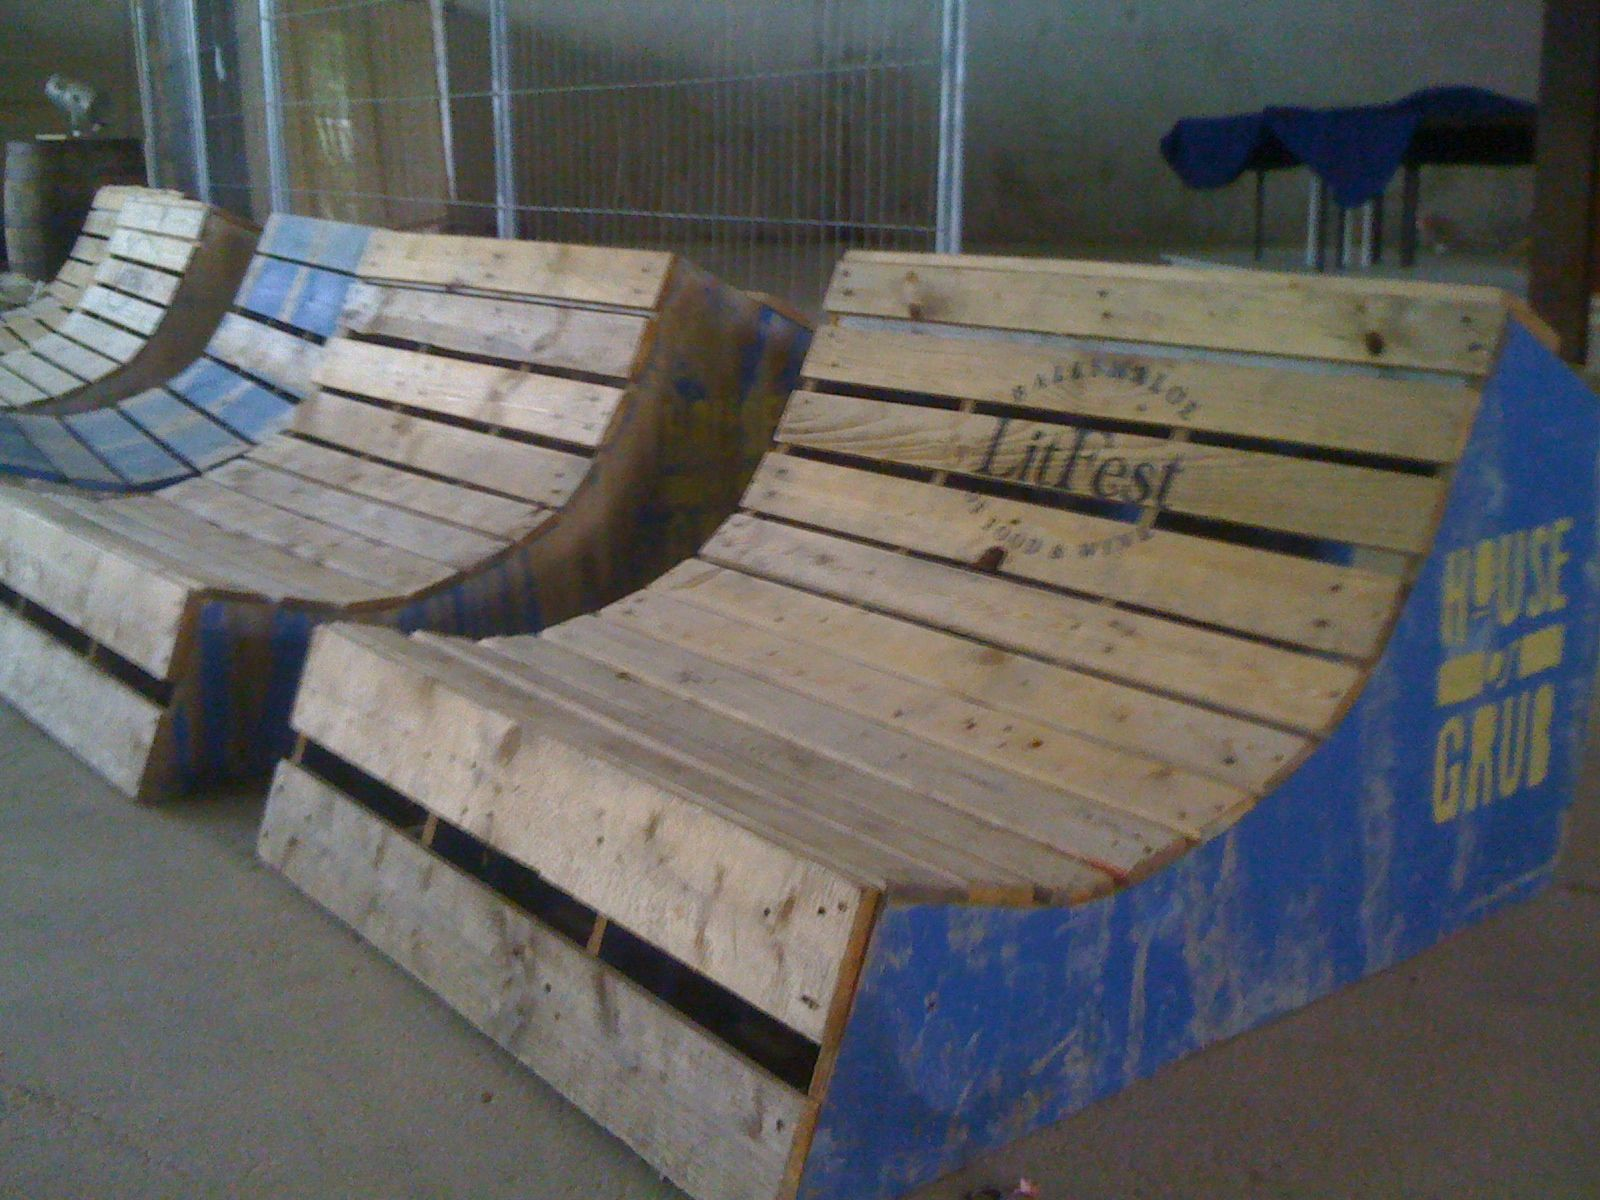 The skate ramp chairs get ballymaloe 39 d what pinterest for Skateboard chair plans